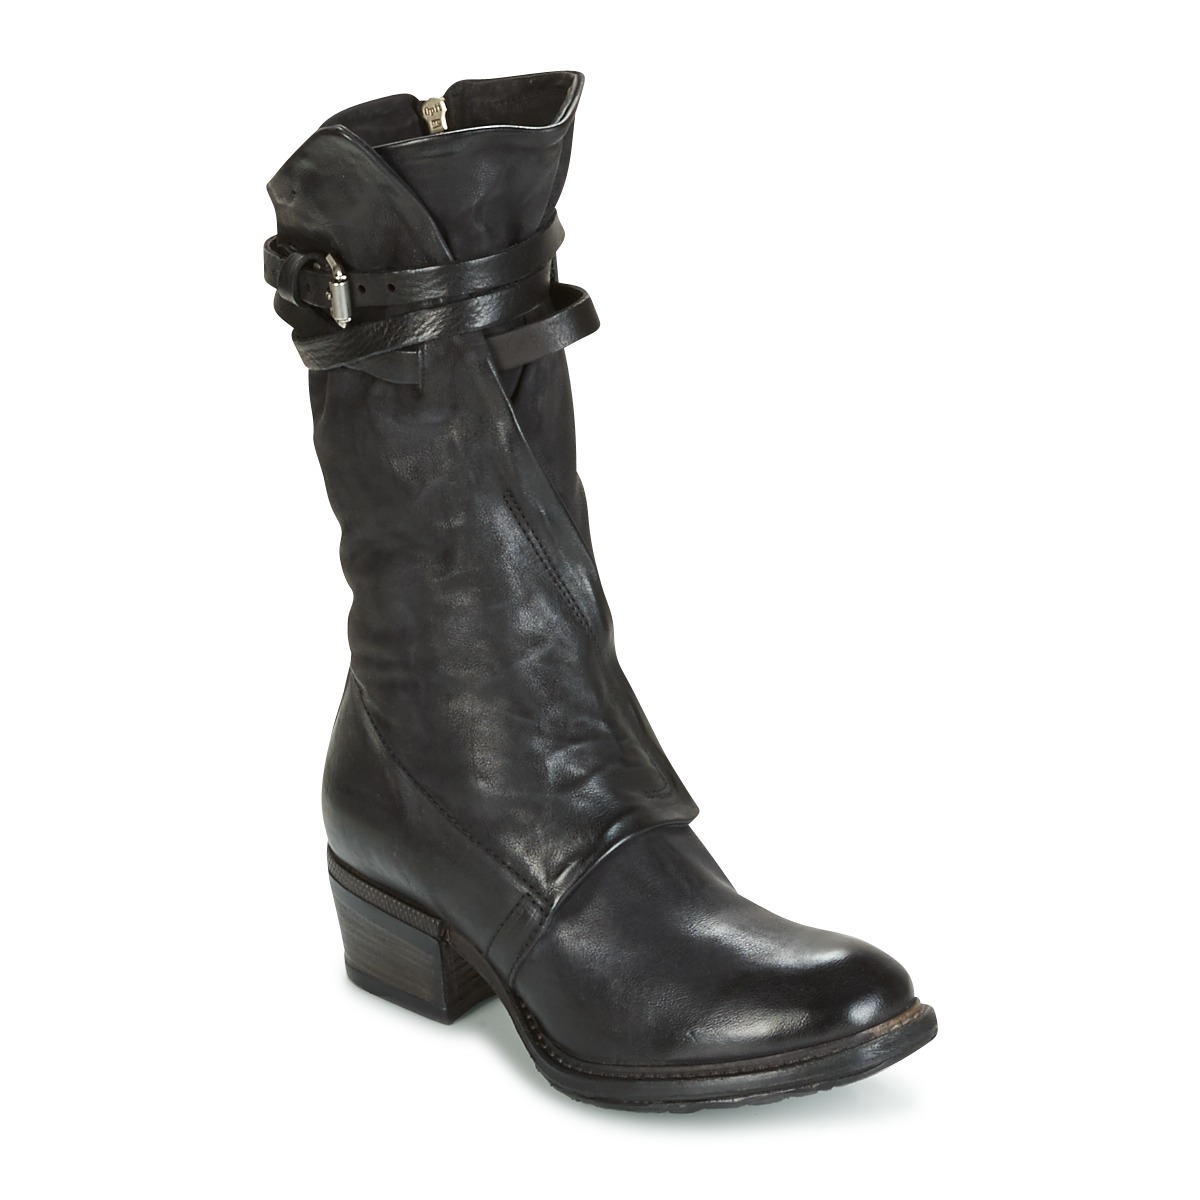 the cheapest the best attitude lowest price Airstep / A.S.98 CORN Noir - Bottes Femme Spartoo